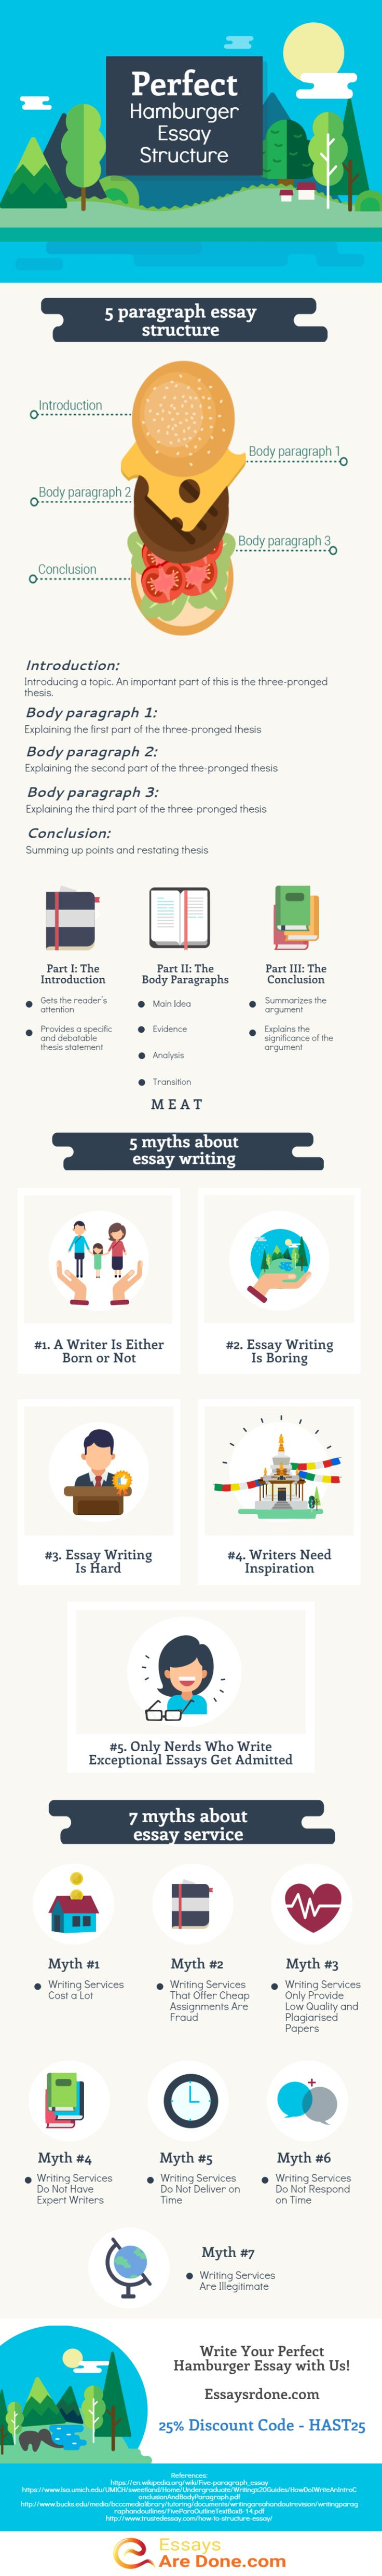 best ideas about essay structure essay writing this is essay structure made simple and interesting to learn see this infographic and you will have no problems structuring an essay ever